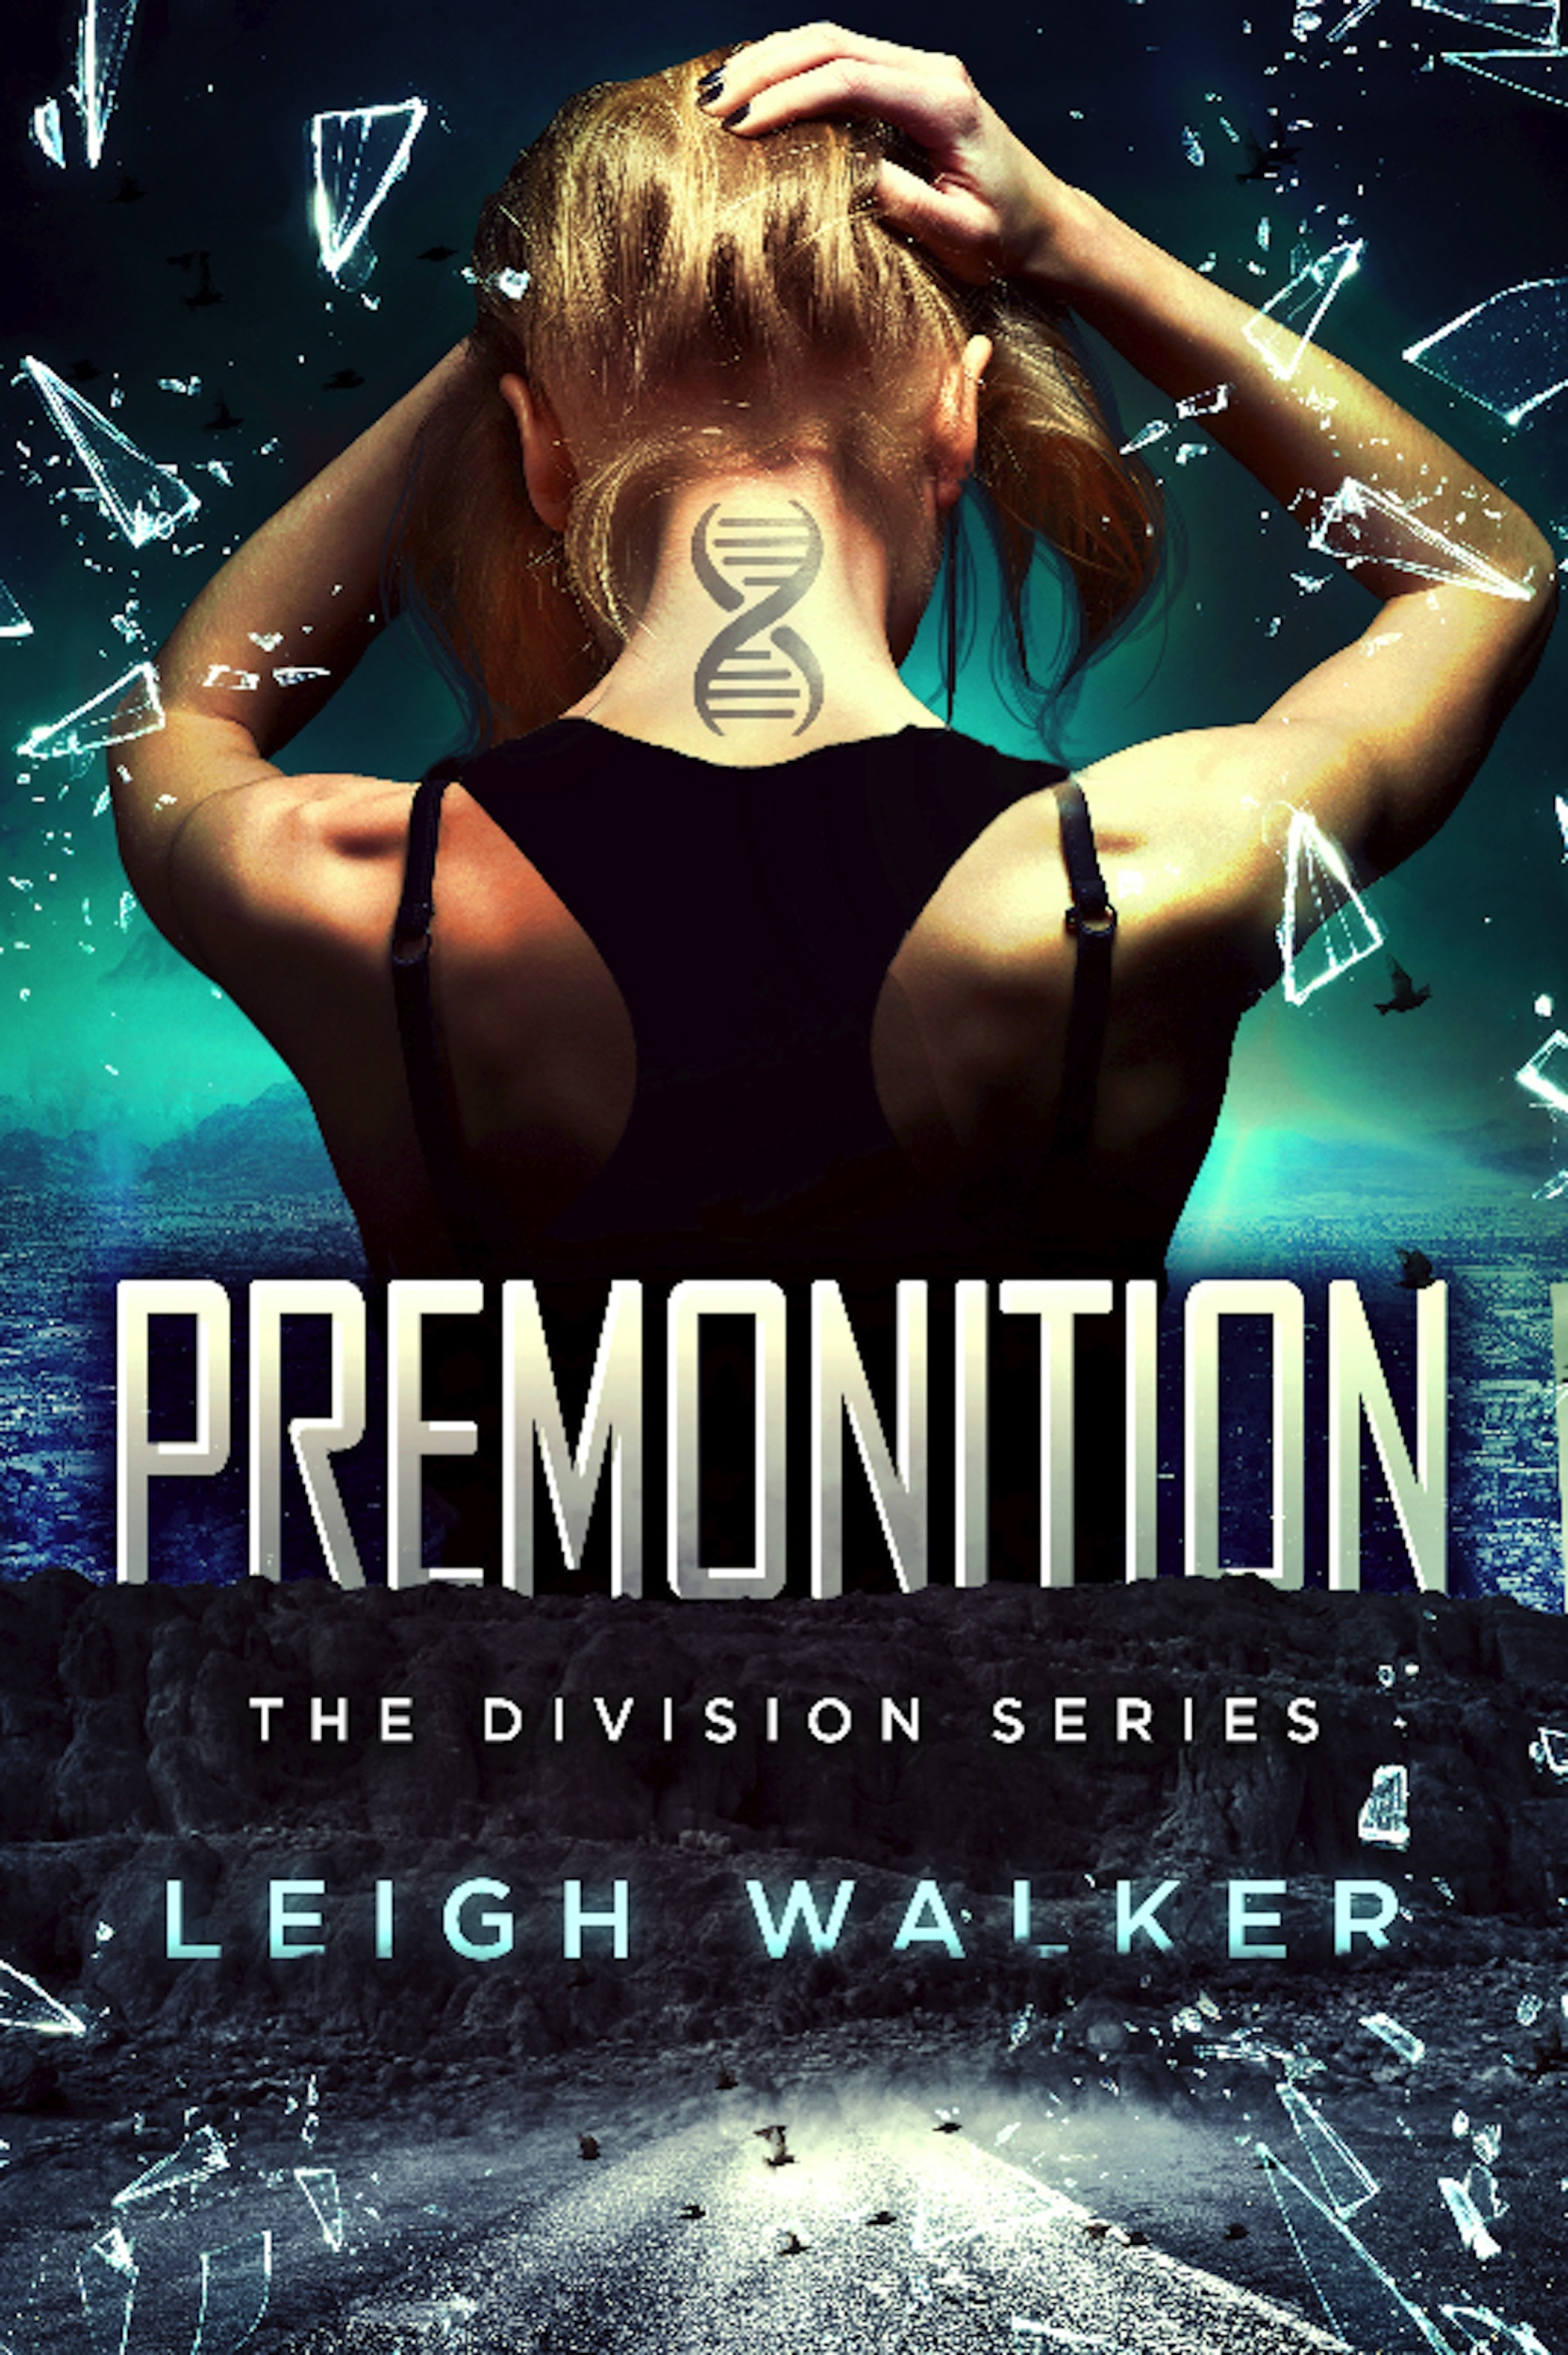 Premonition (The Division Series #1) byLeigh Walker